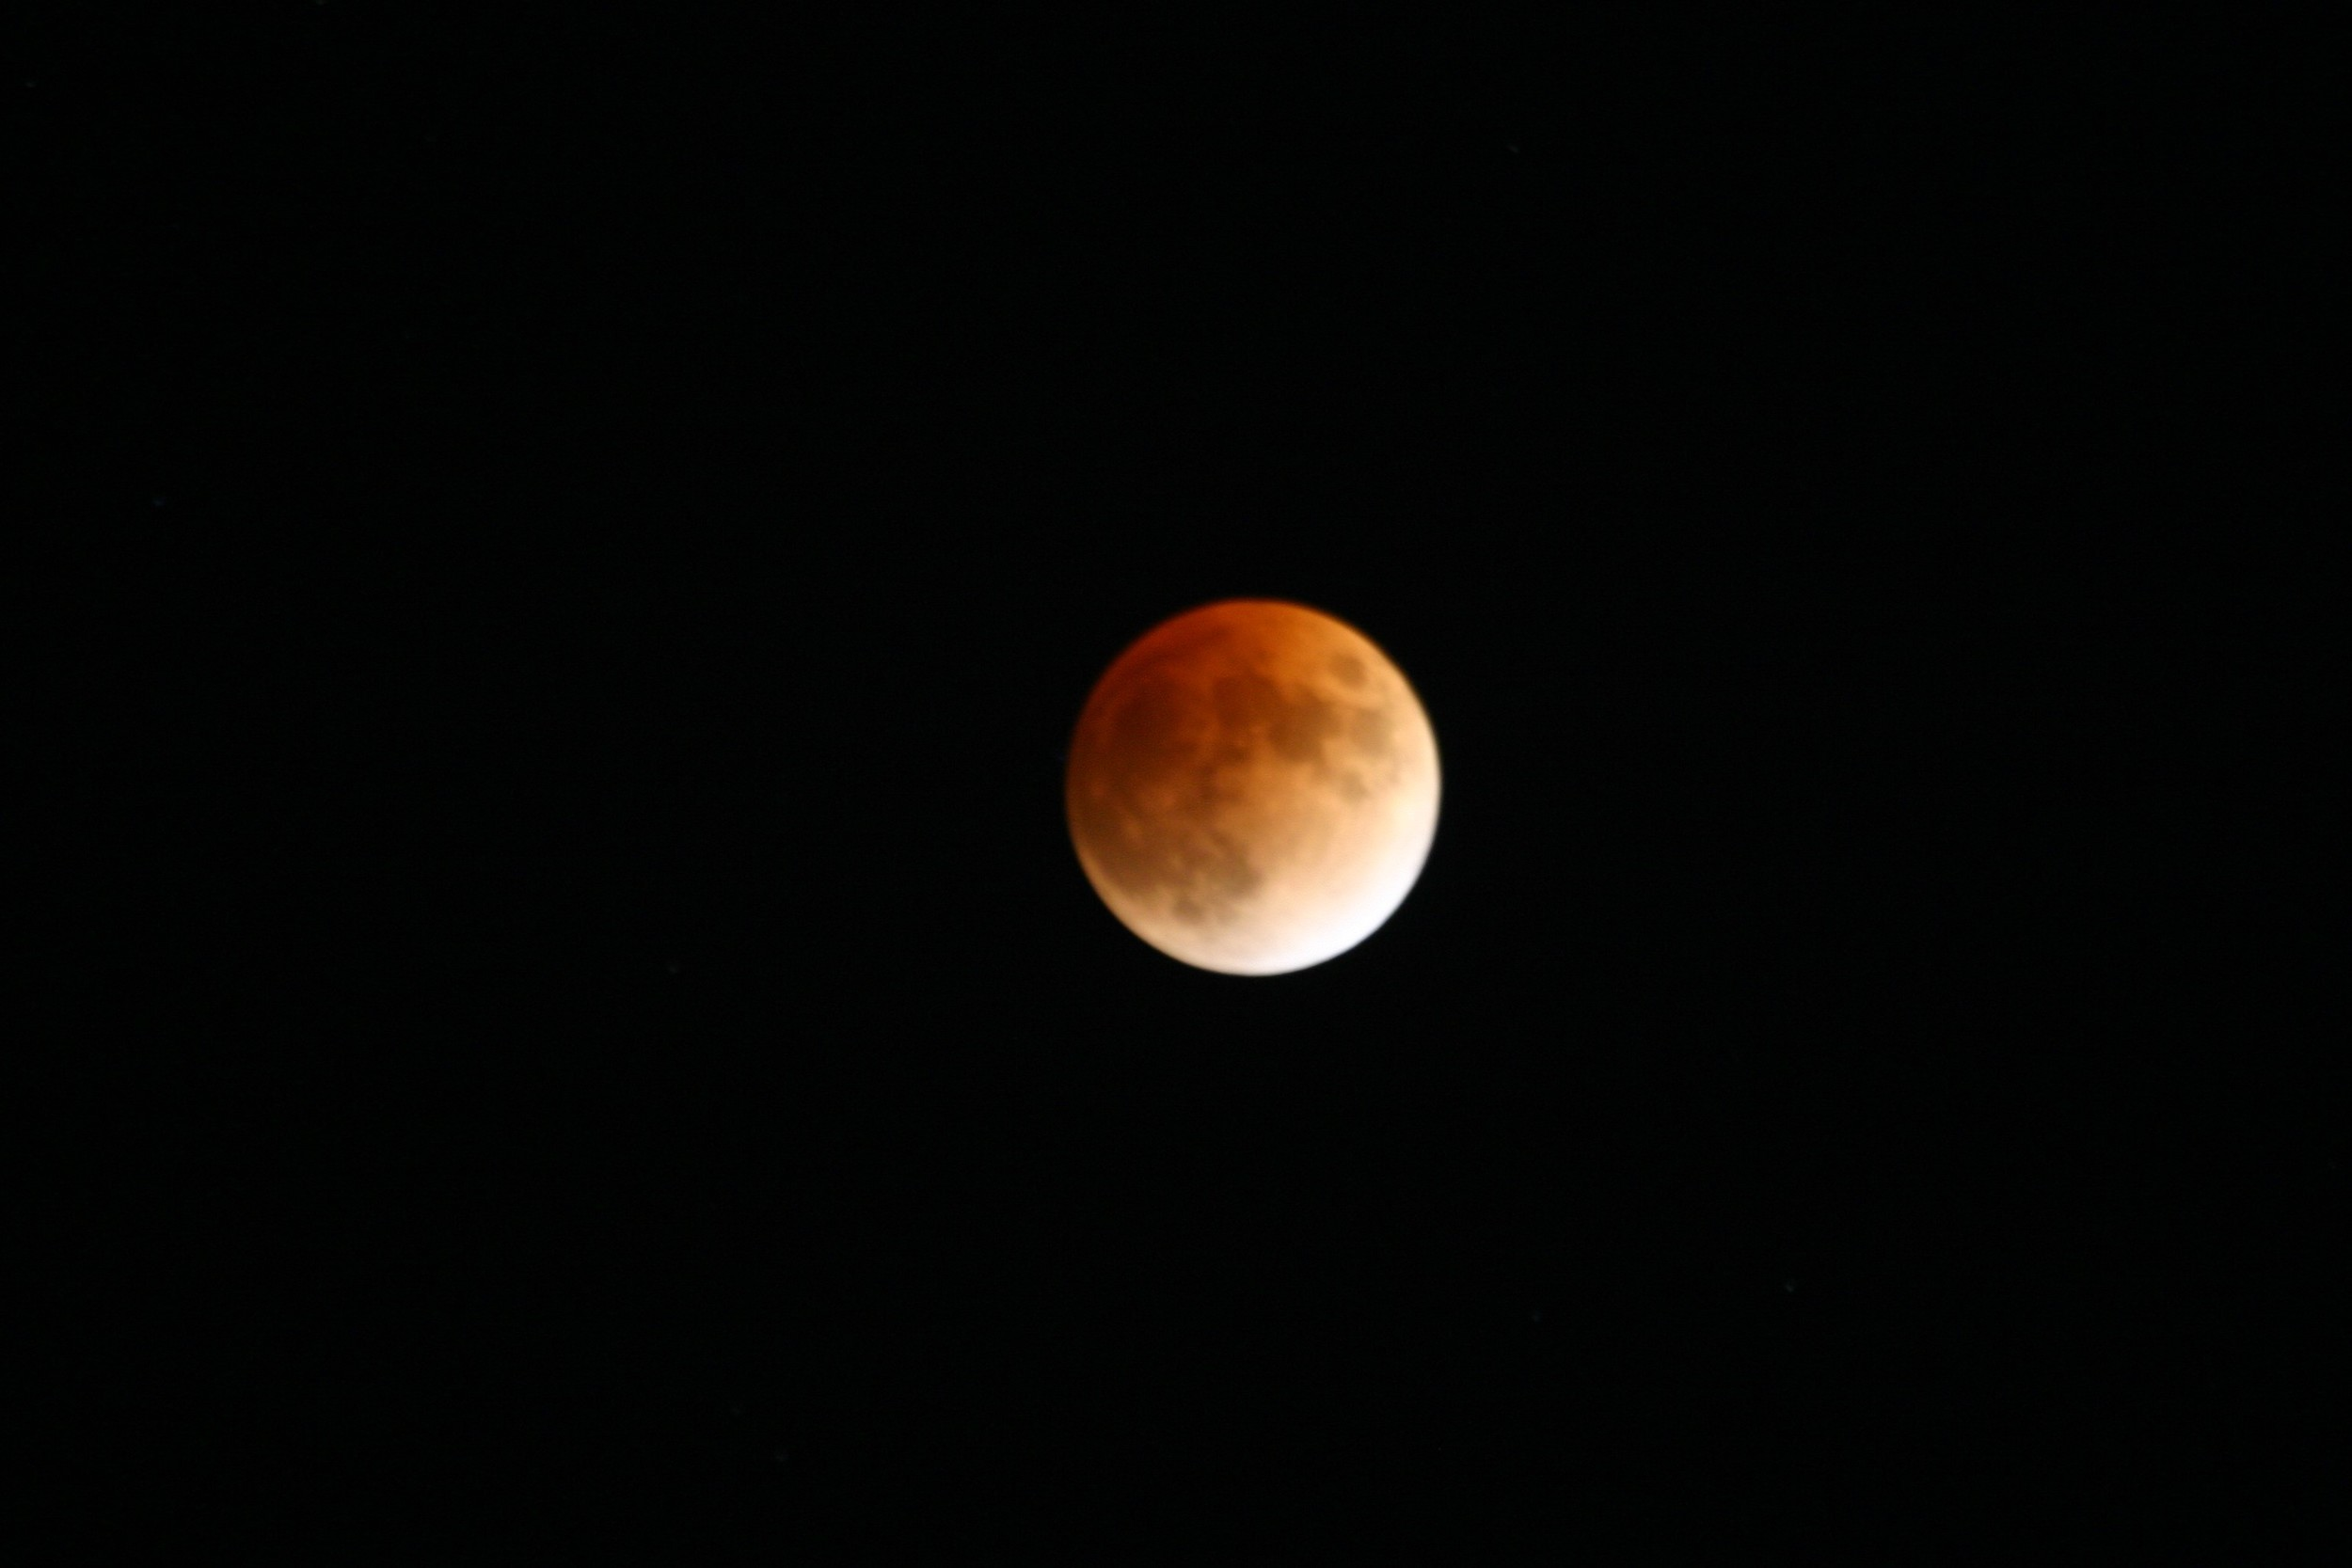 Total lunar eclipse of February 21, 2008 photographed with a 400 mm lens